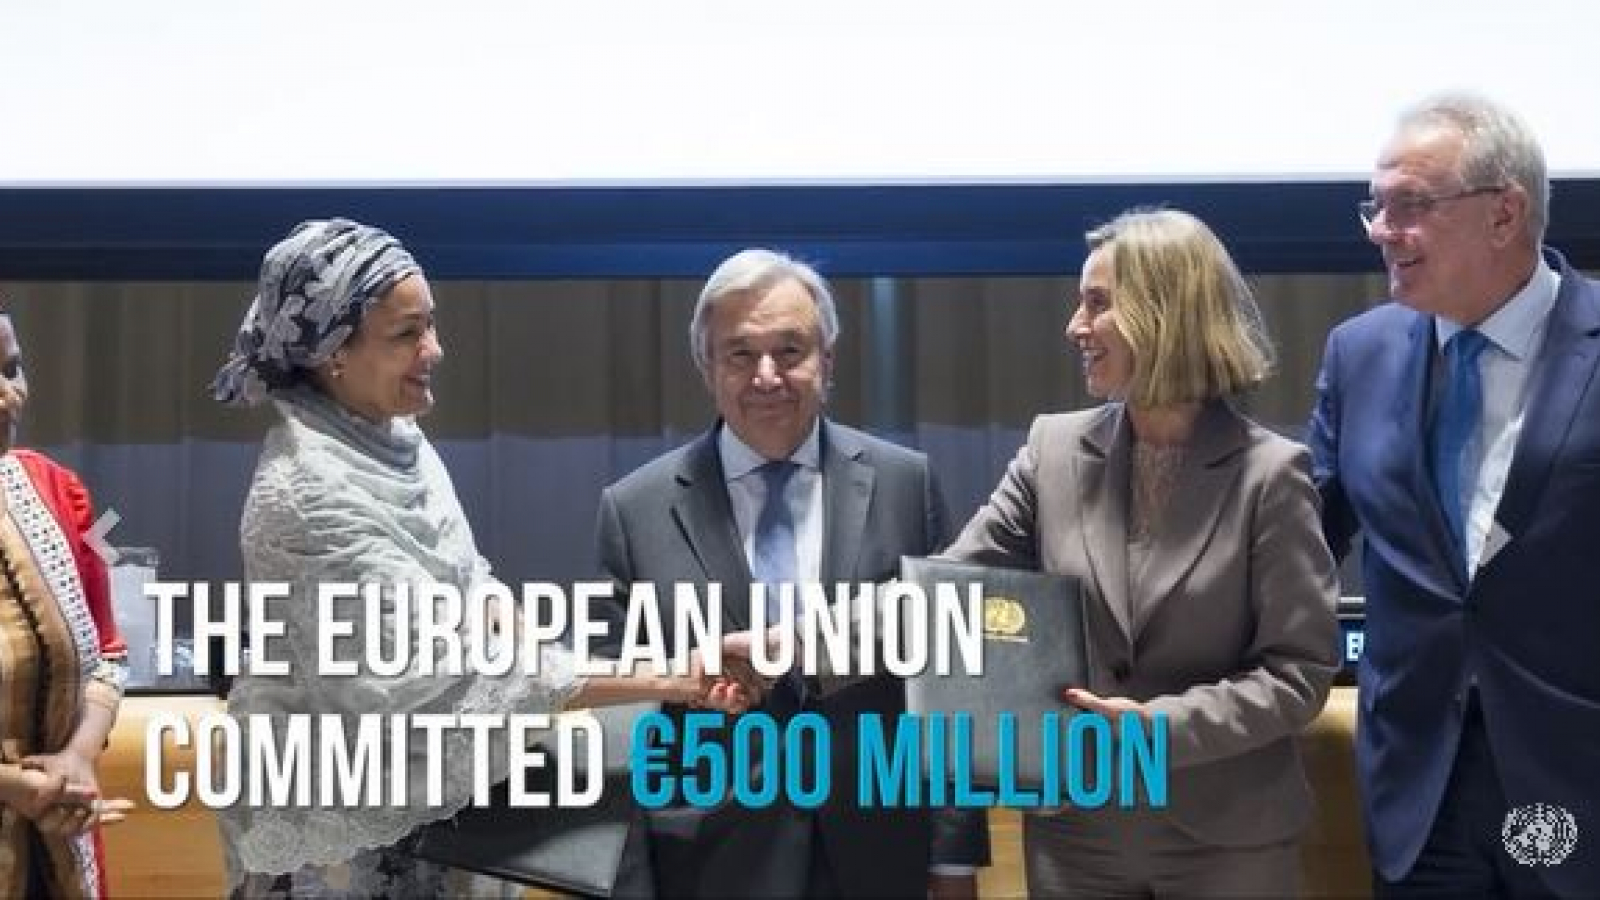 EU-UN Spotlight Initiative: at the forefront of ending violence against women and girls